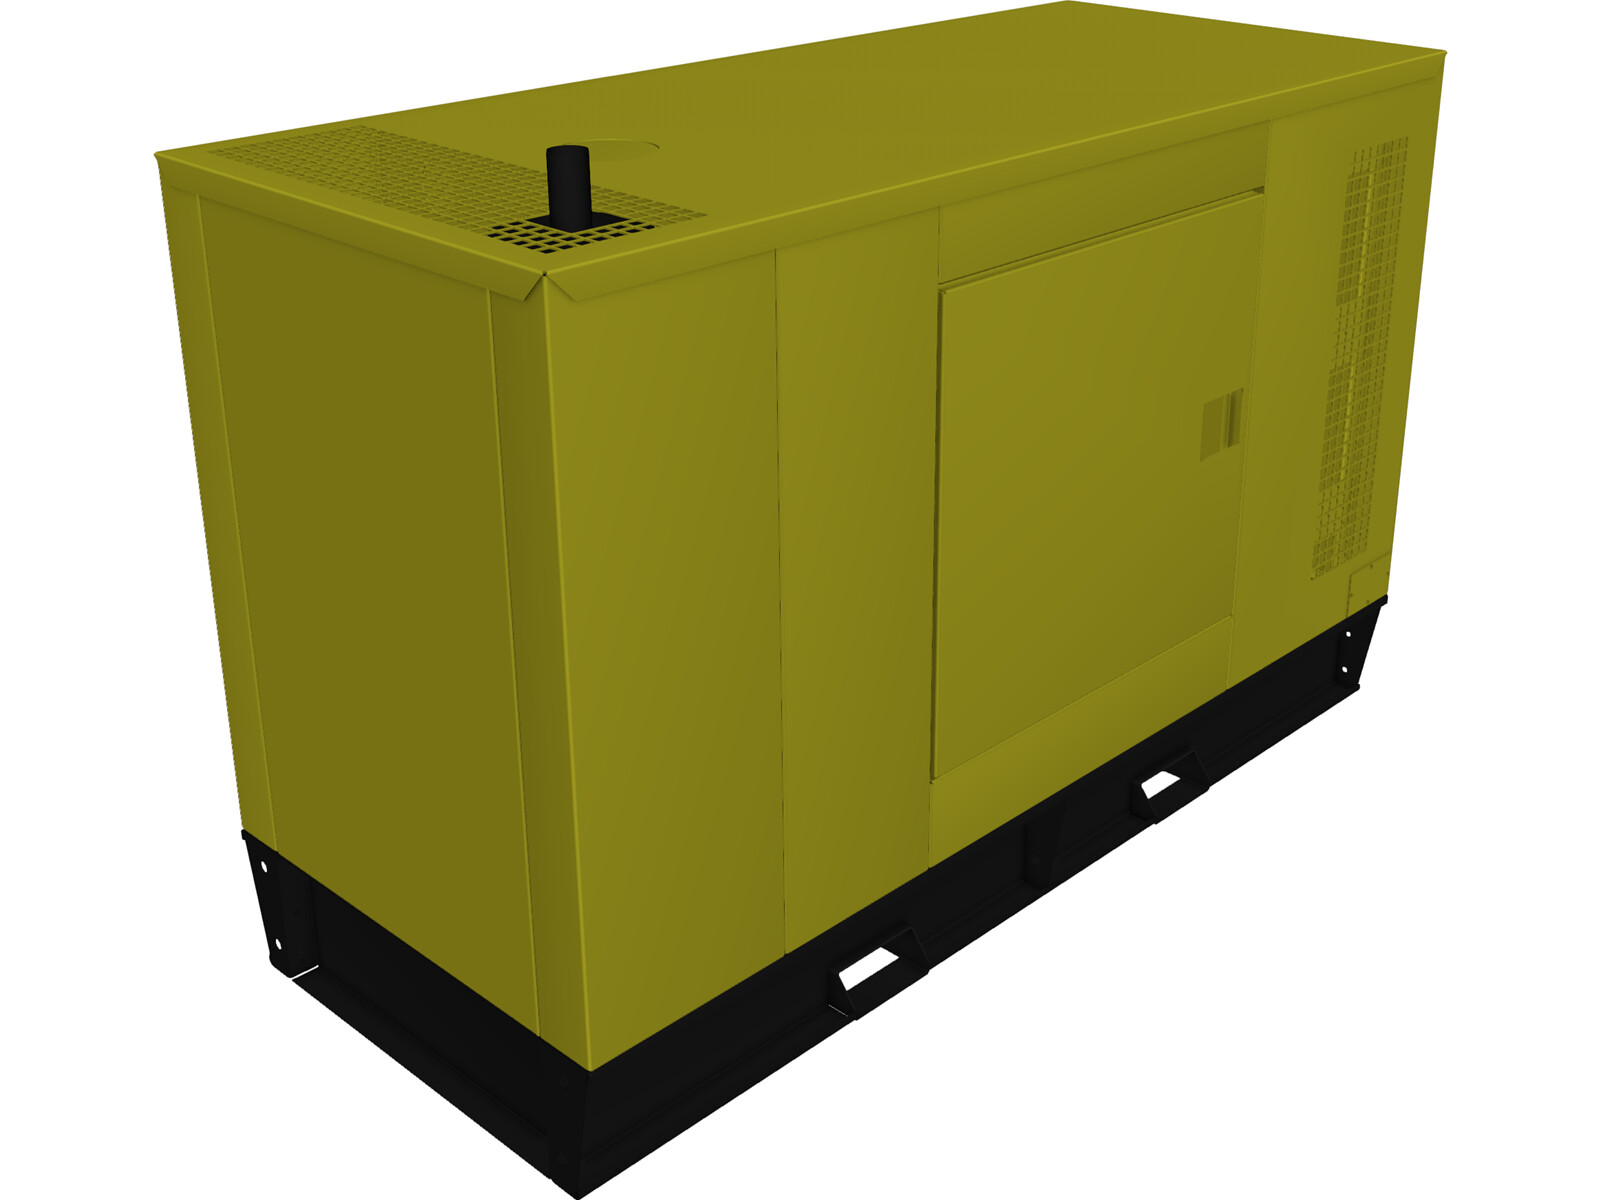 Diesel Generator Type A 3d Cad Model 3d Cad Browser